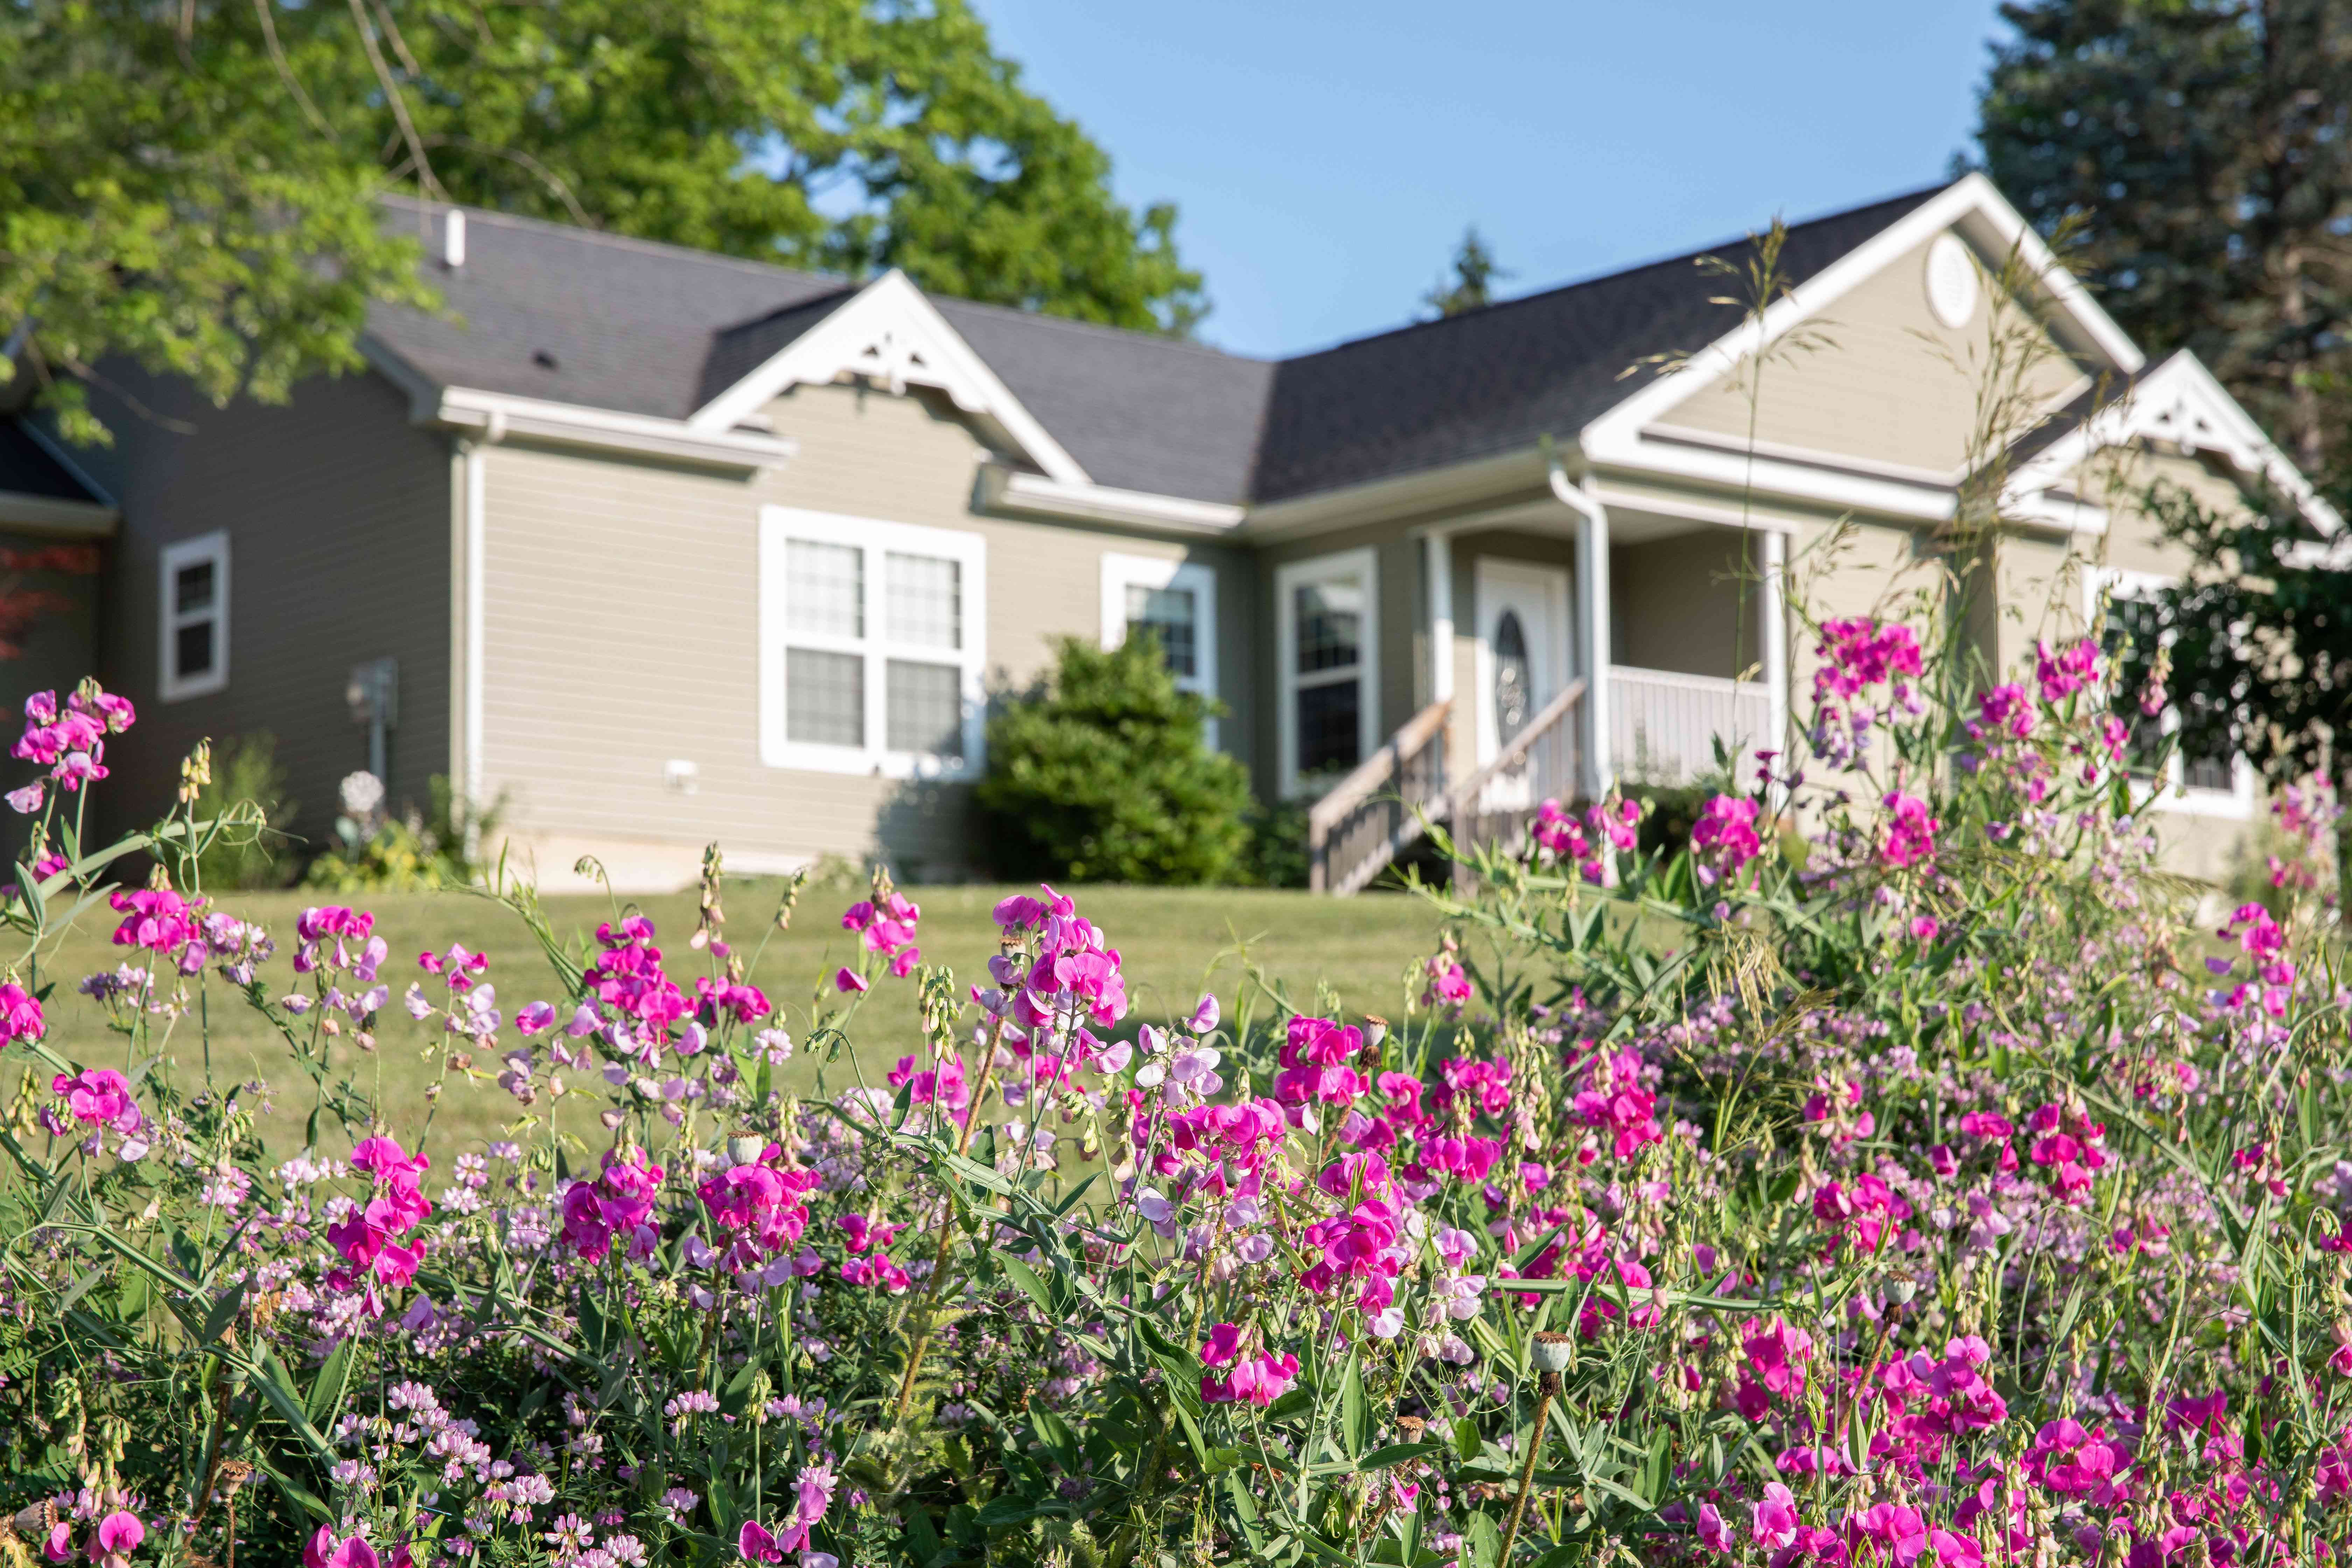 Sweat pea flowers with bright pink petals in garden in front of house